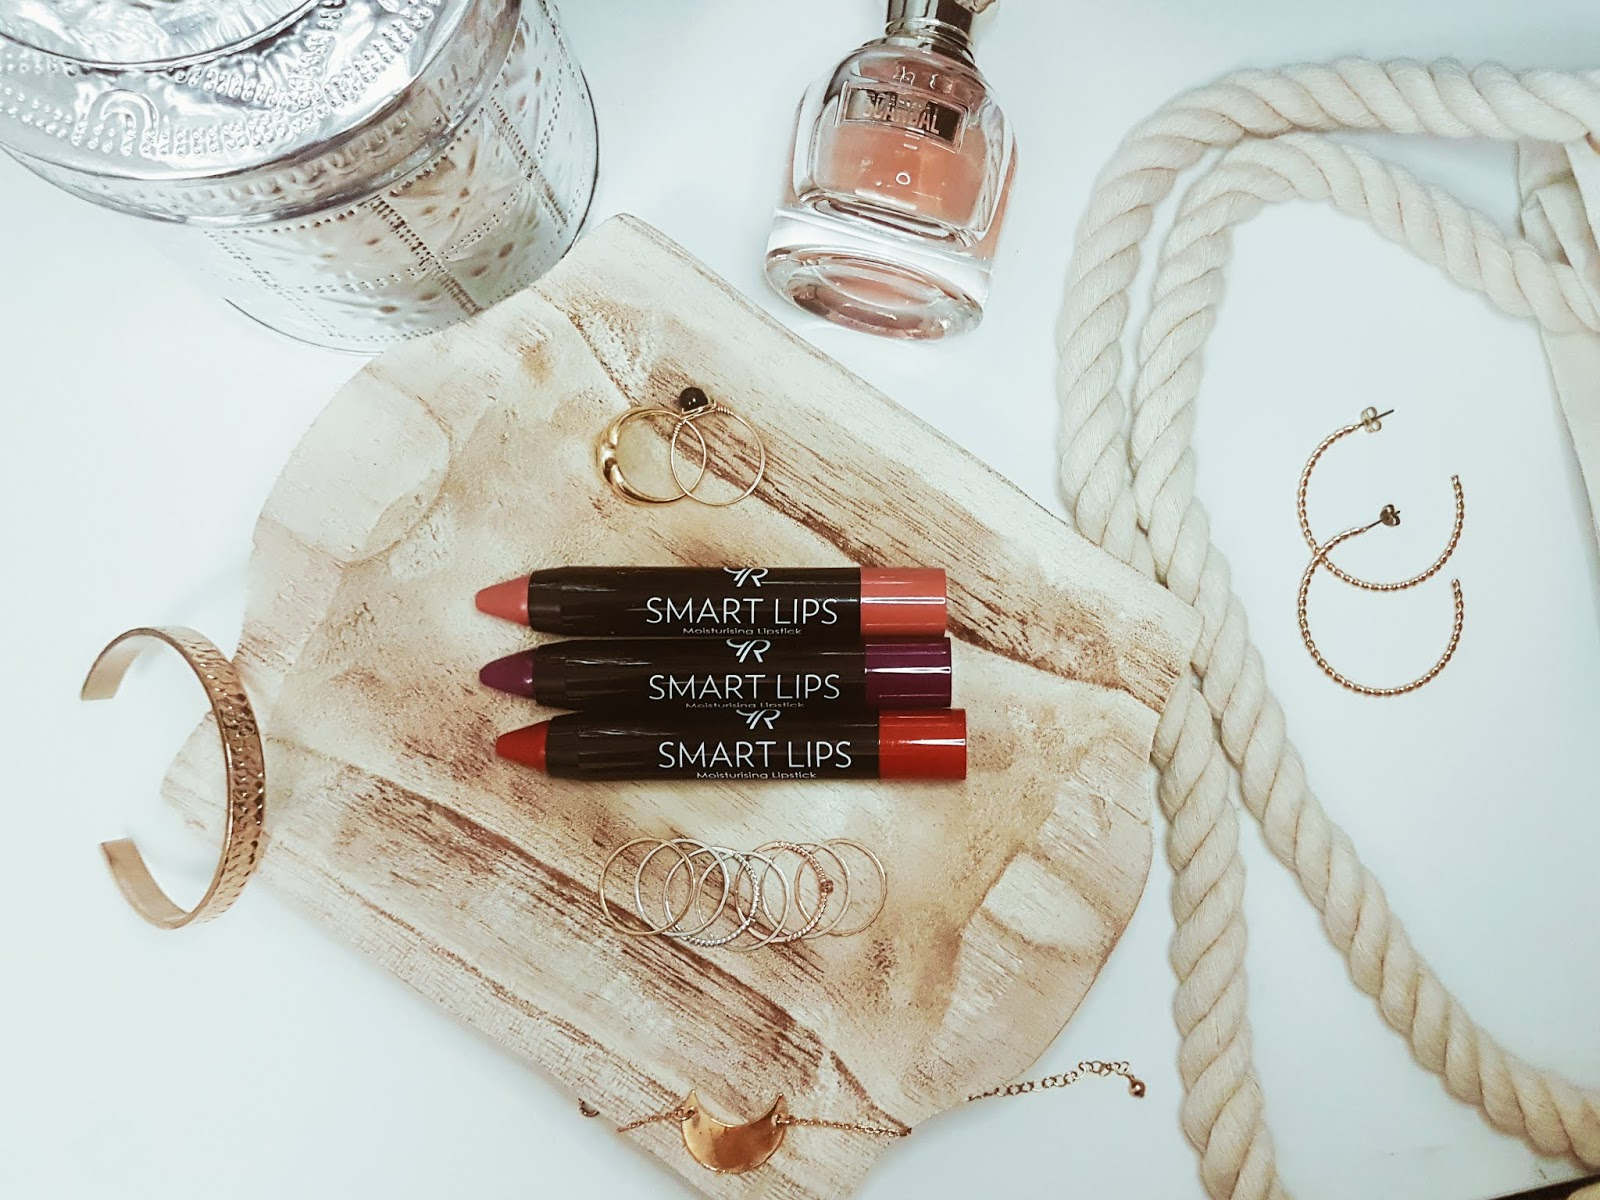 avis_smart_lips_moisturising_lipstick_golden_rose_cookies_makeup_mama_syca_beaute_hivency